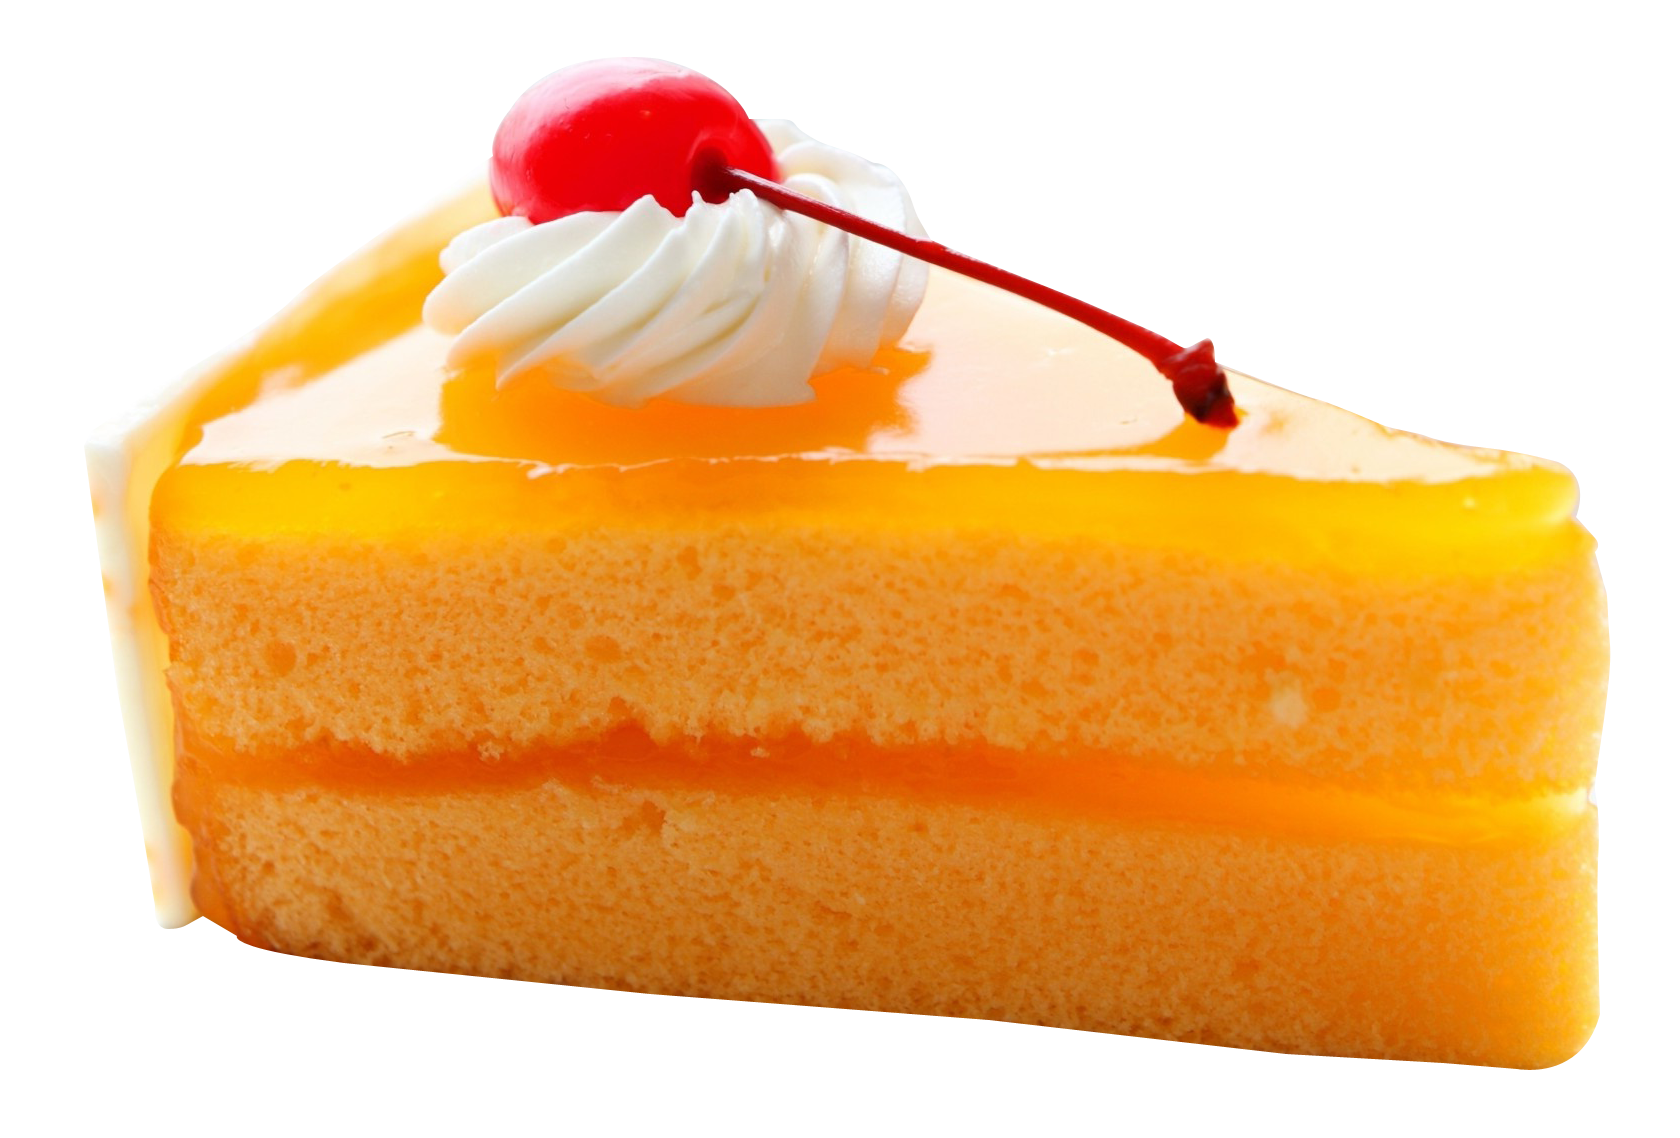 Cheesecake slice png. Of cake transparent images